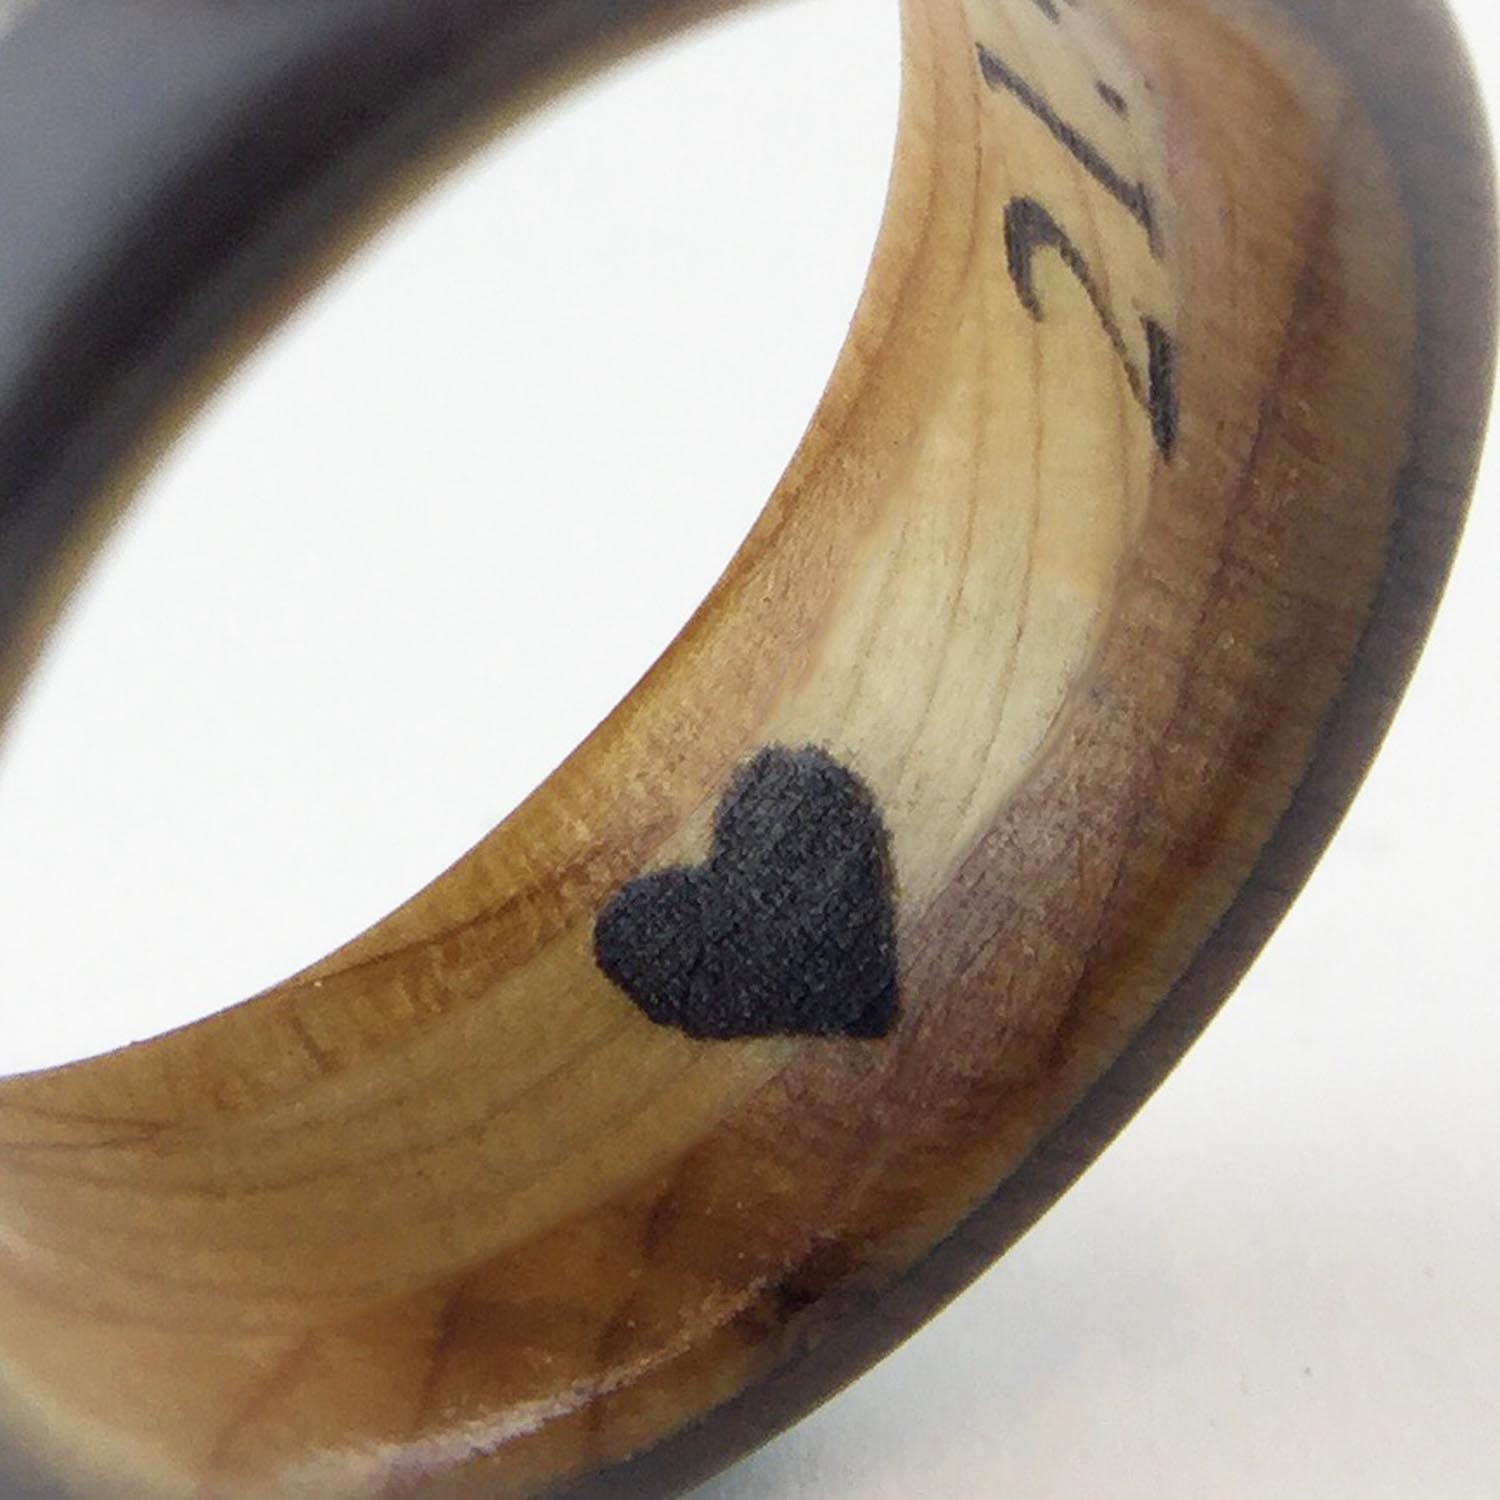 Wooden Ring Inscription - We can even apply a heart or infinity symbol